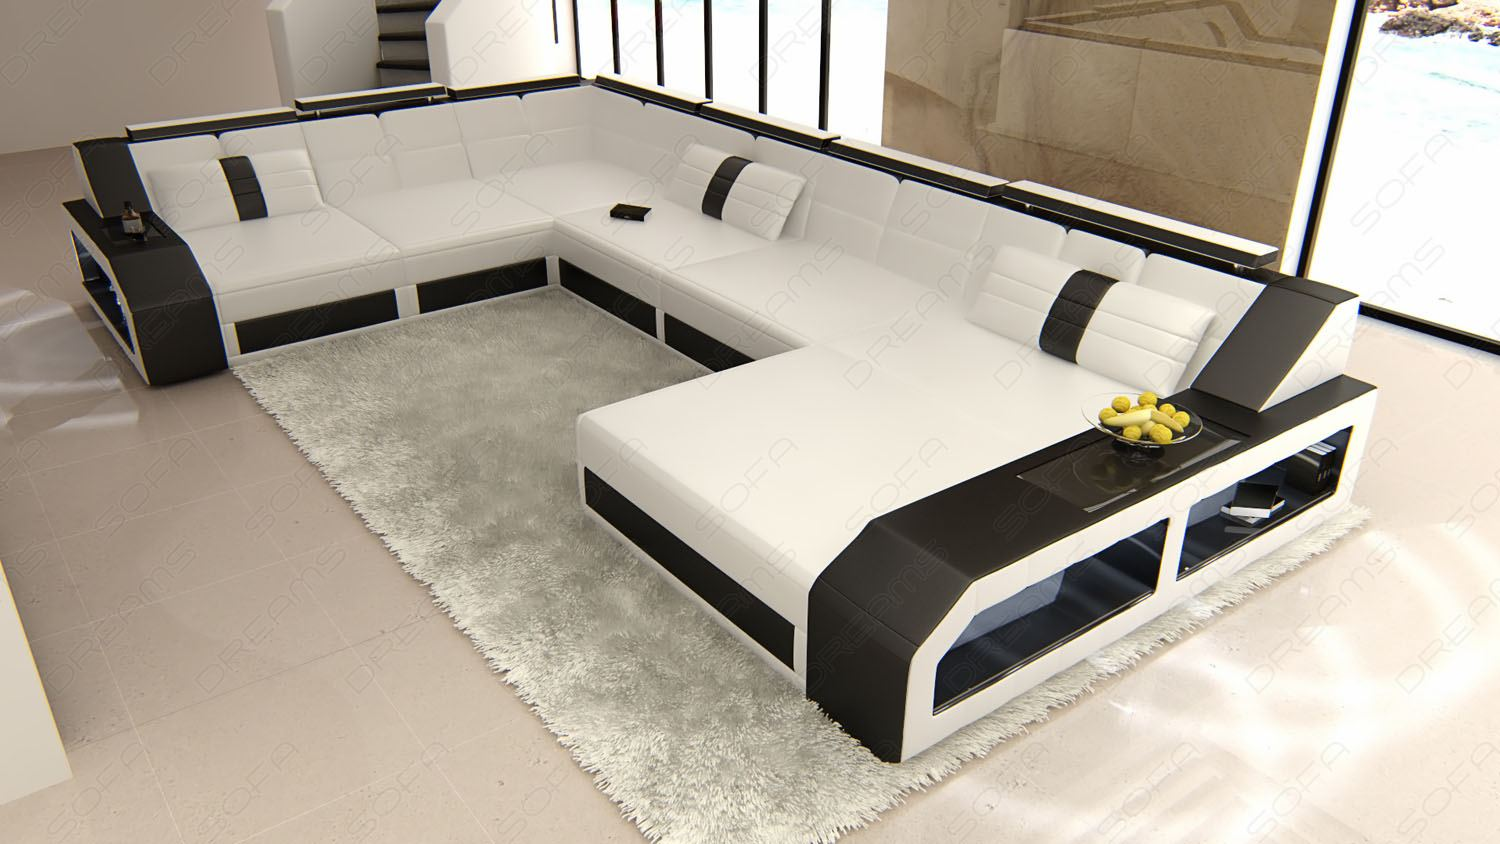 leather sofa italian design matera xxl in u shaped with led lighting. Black Bedroom Furniture Sets. Home Design Ideas